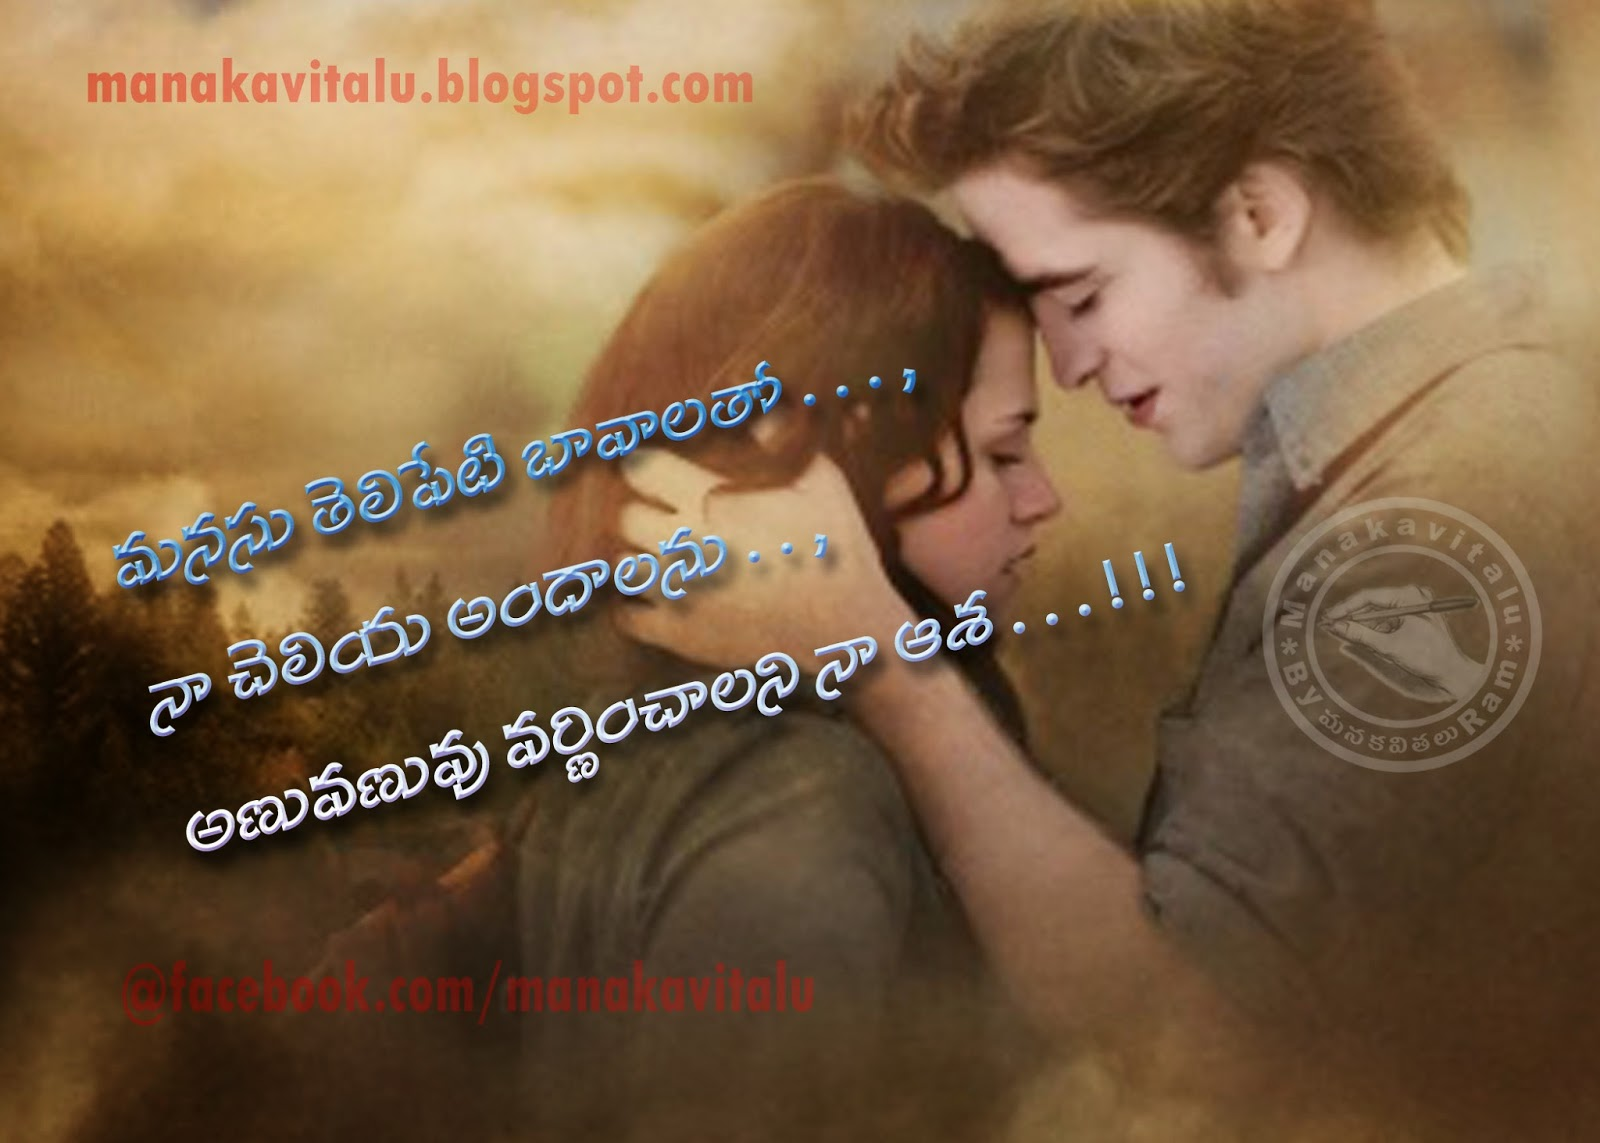 na asha telugu love kavitalu on images